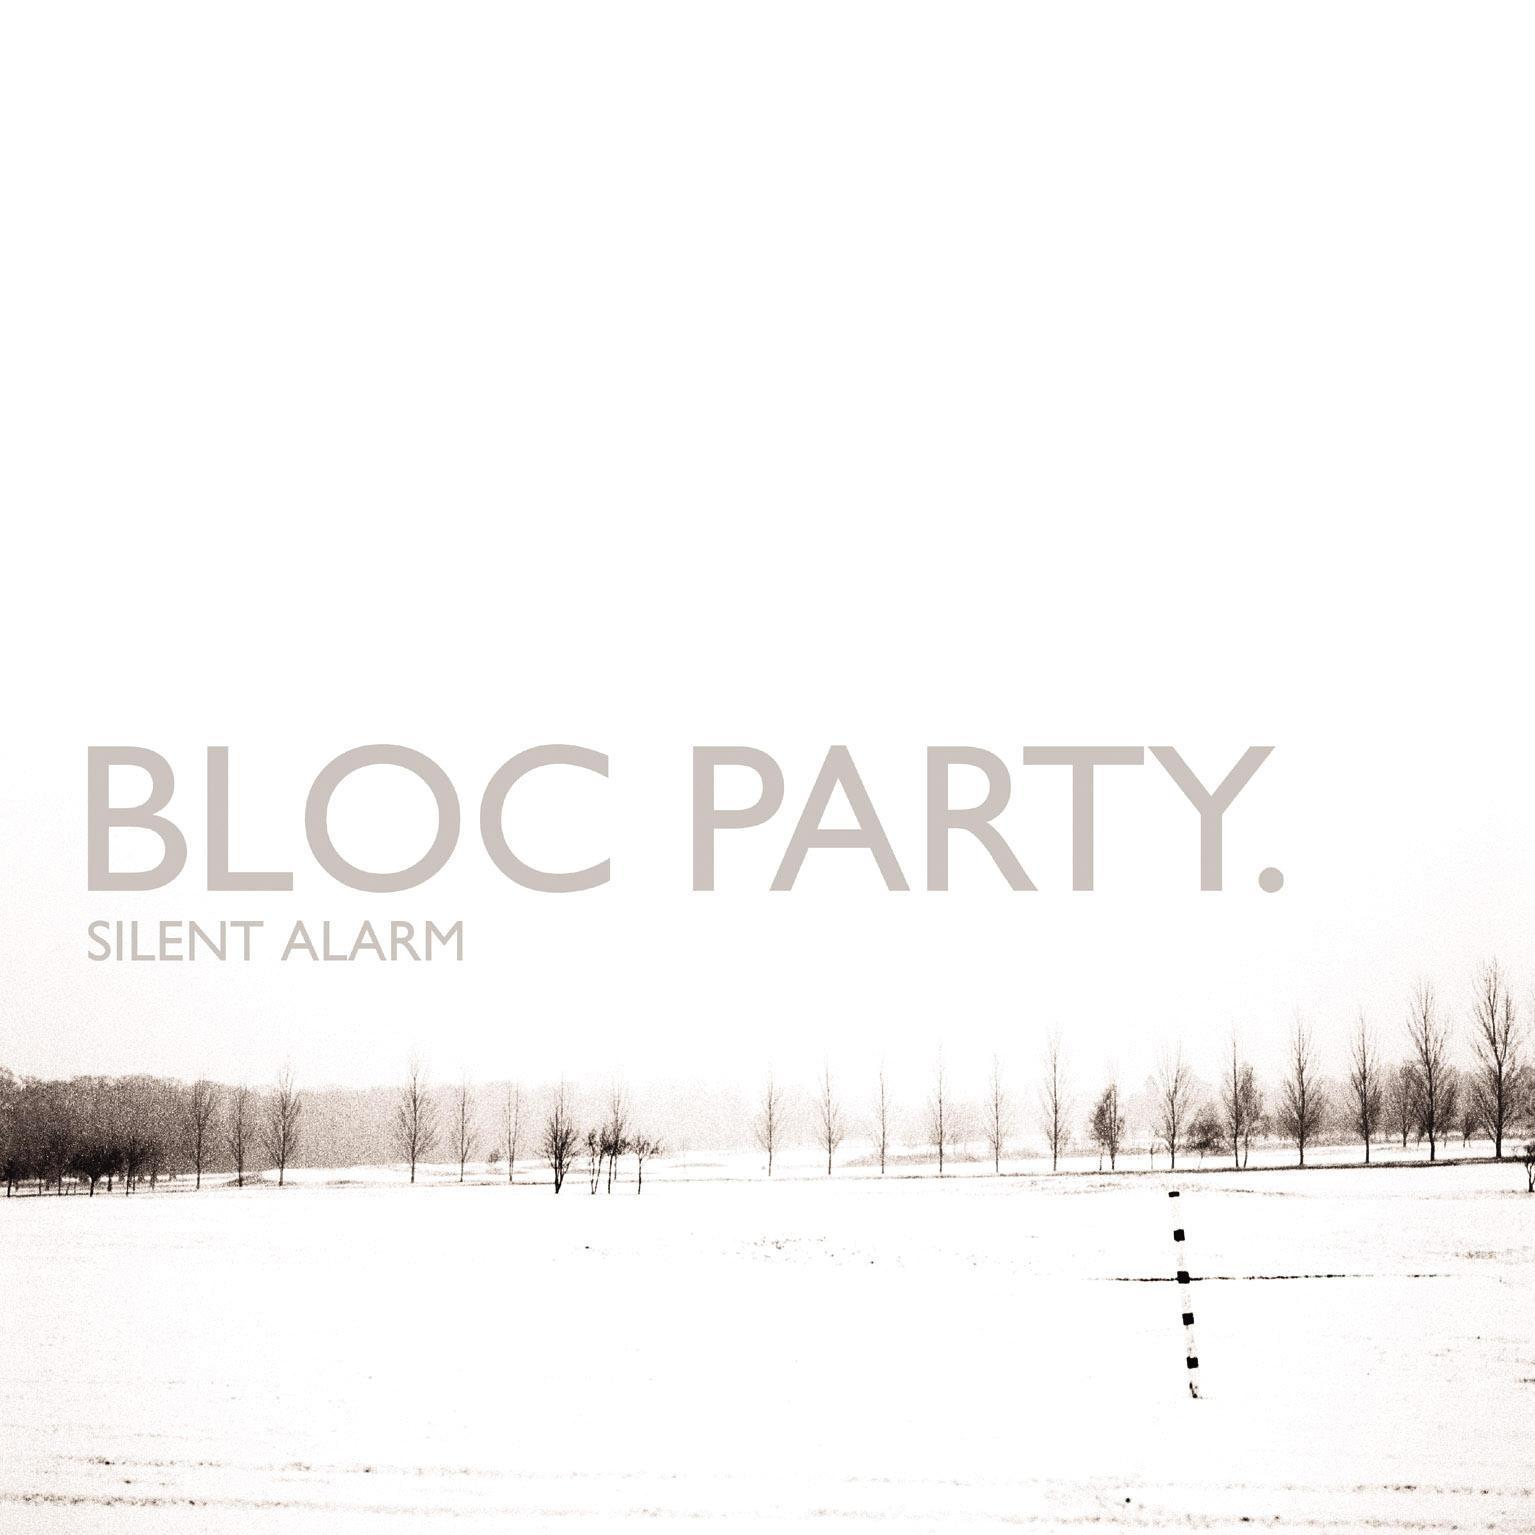 helicopter bloc with Silent Alrm By Bloc Party on Silent Alrm By Bloc Party likewise 10 Abandoned Tank Graveyards Battle Vehicles Across World together with By Country further 20150408 more Electric Aircraft Power Future likewise 625085623251178477.